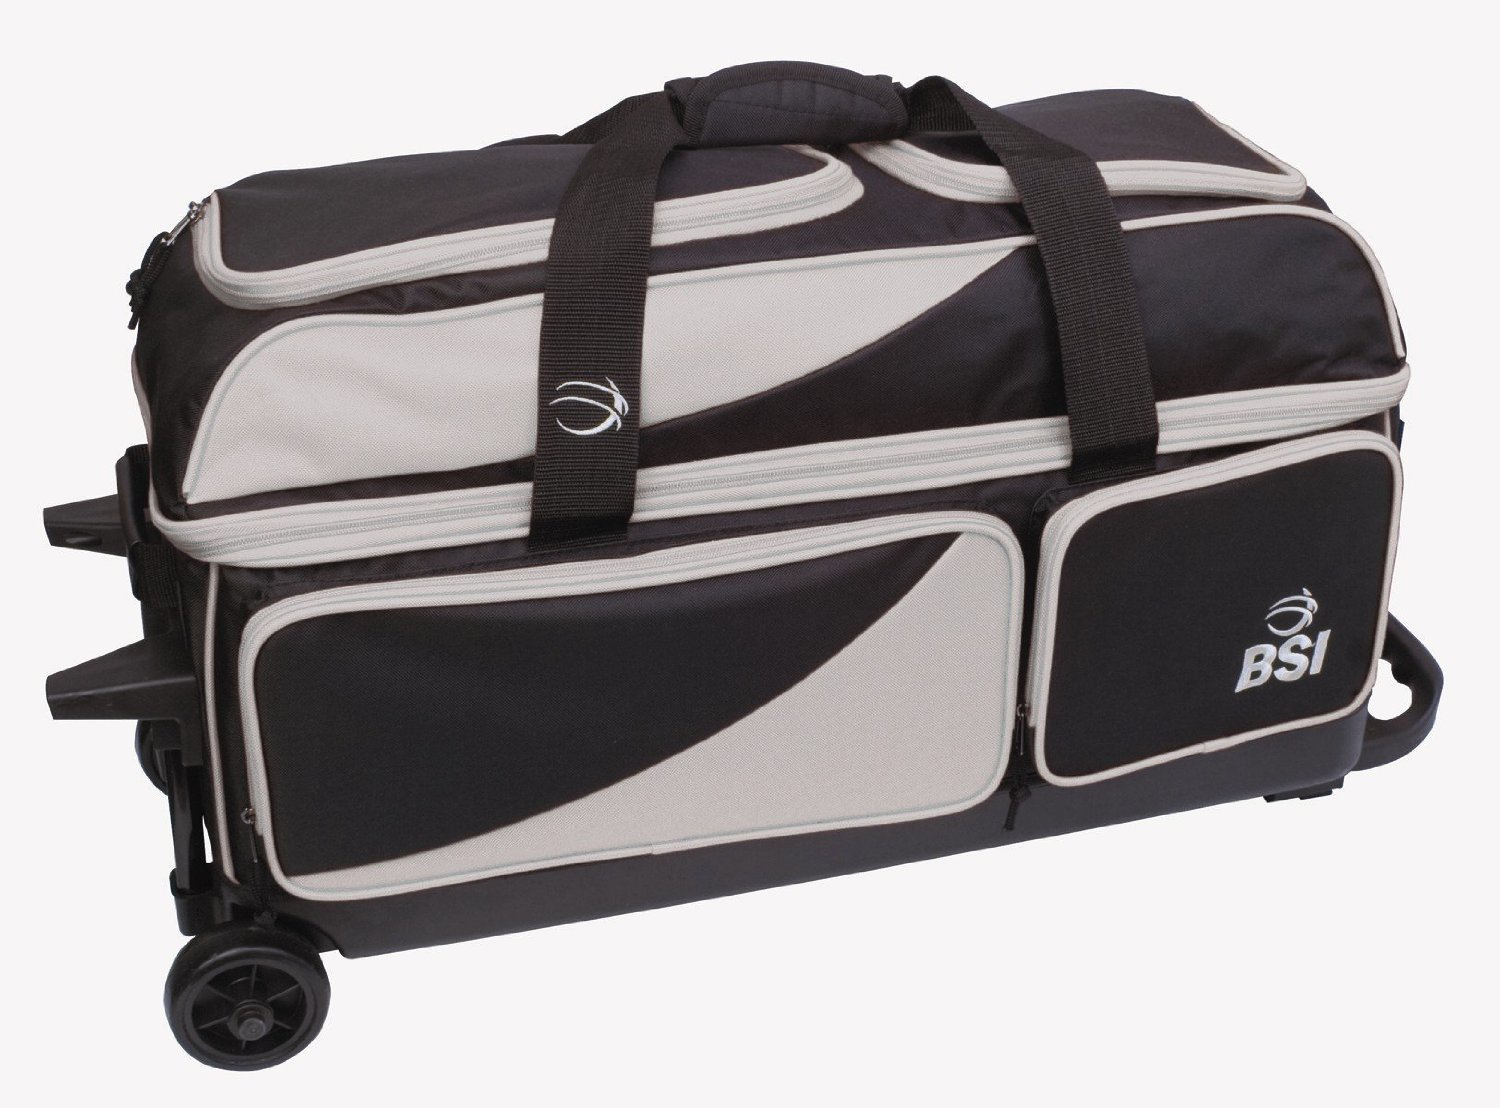 BSI Black/Grey 3 Ball Roller Bowling Bag 1362